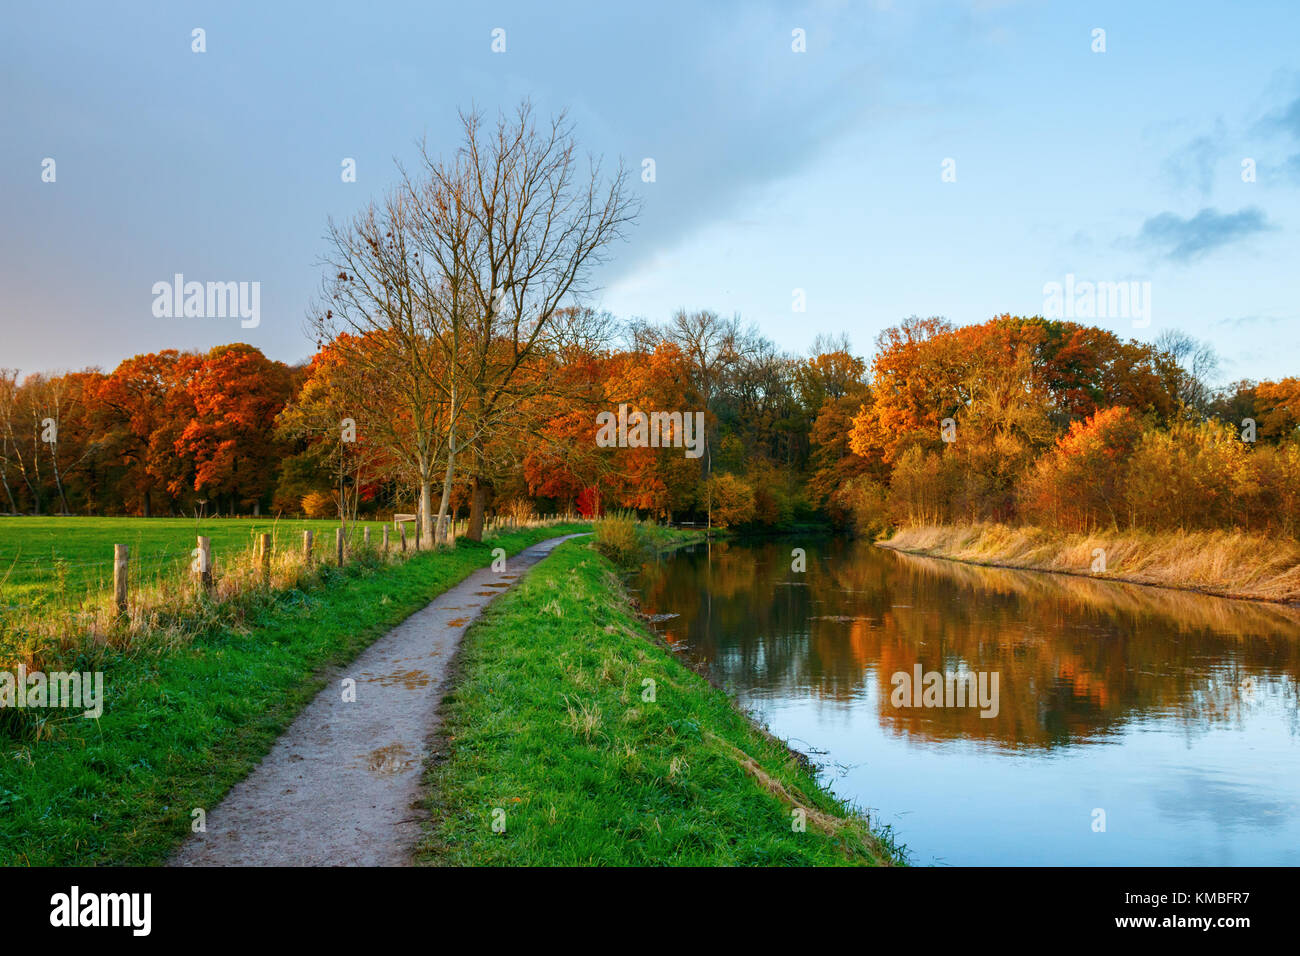 "Towpath on the bank of the Kromme Rijn river (""Crooked Rhine"") with the forest of the Amelisweerd estate in autumn - Stock Image"